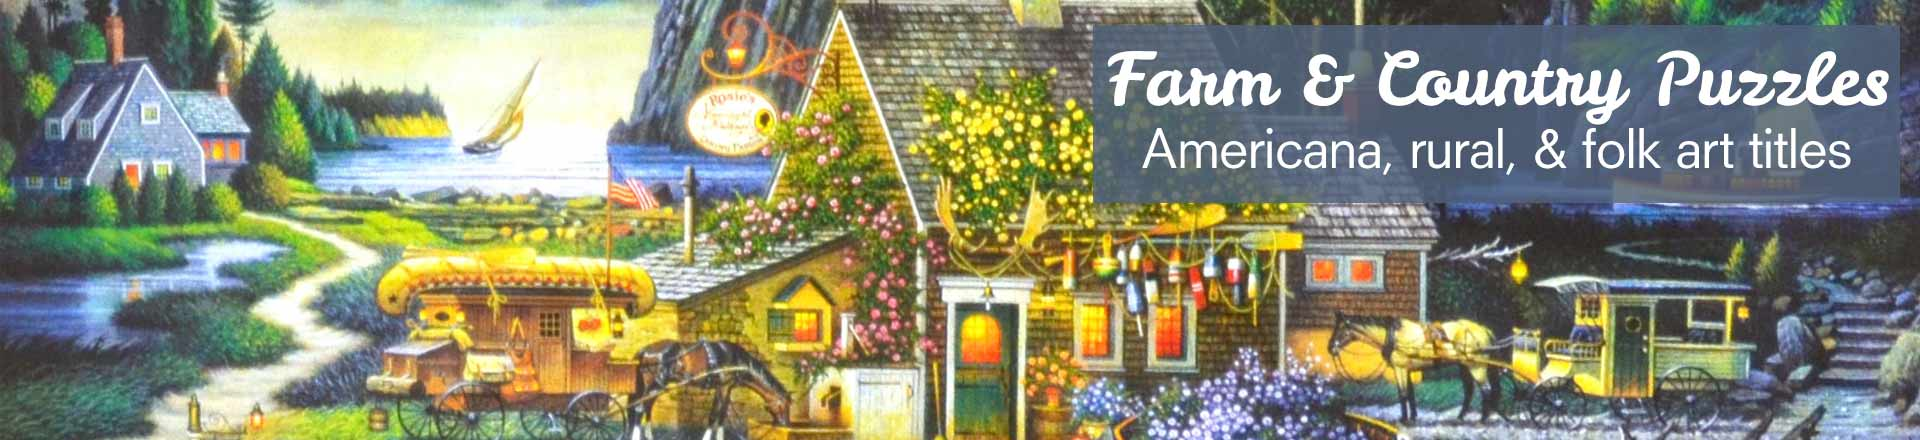 Farm and Country Puzzles